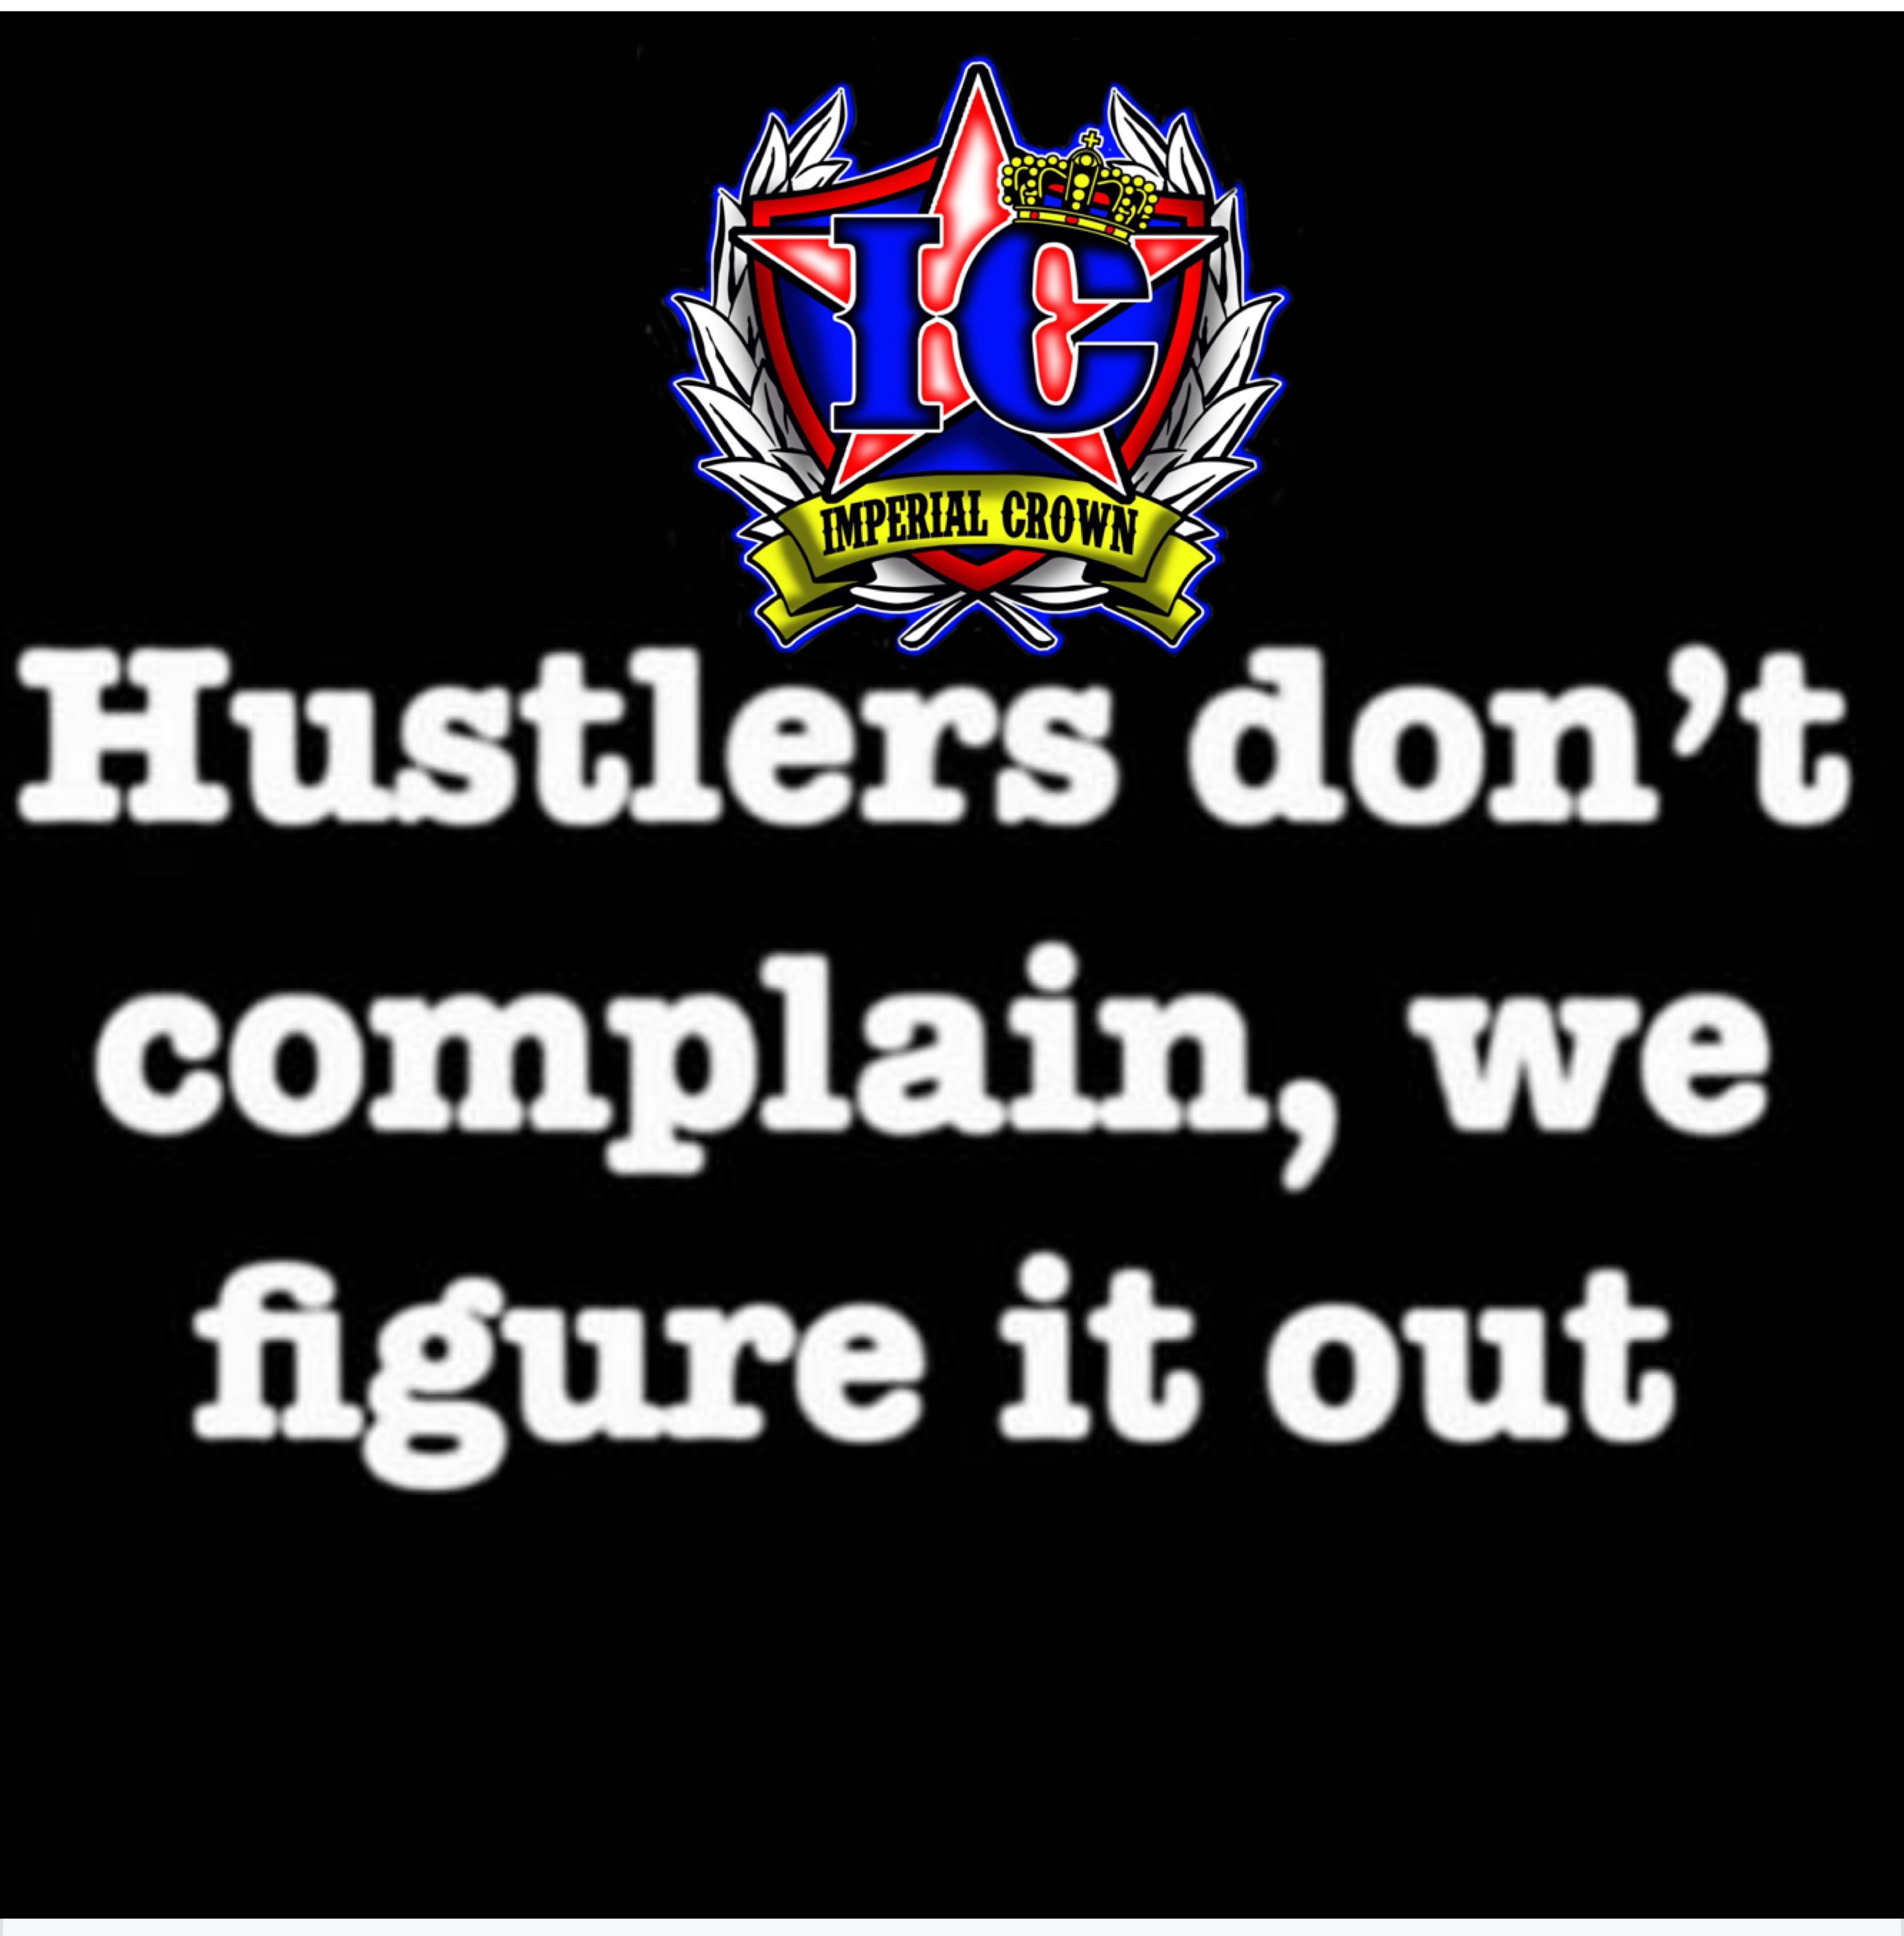 Hustlers don't complain we figure it out